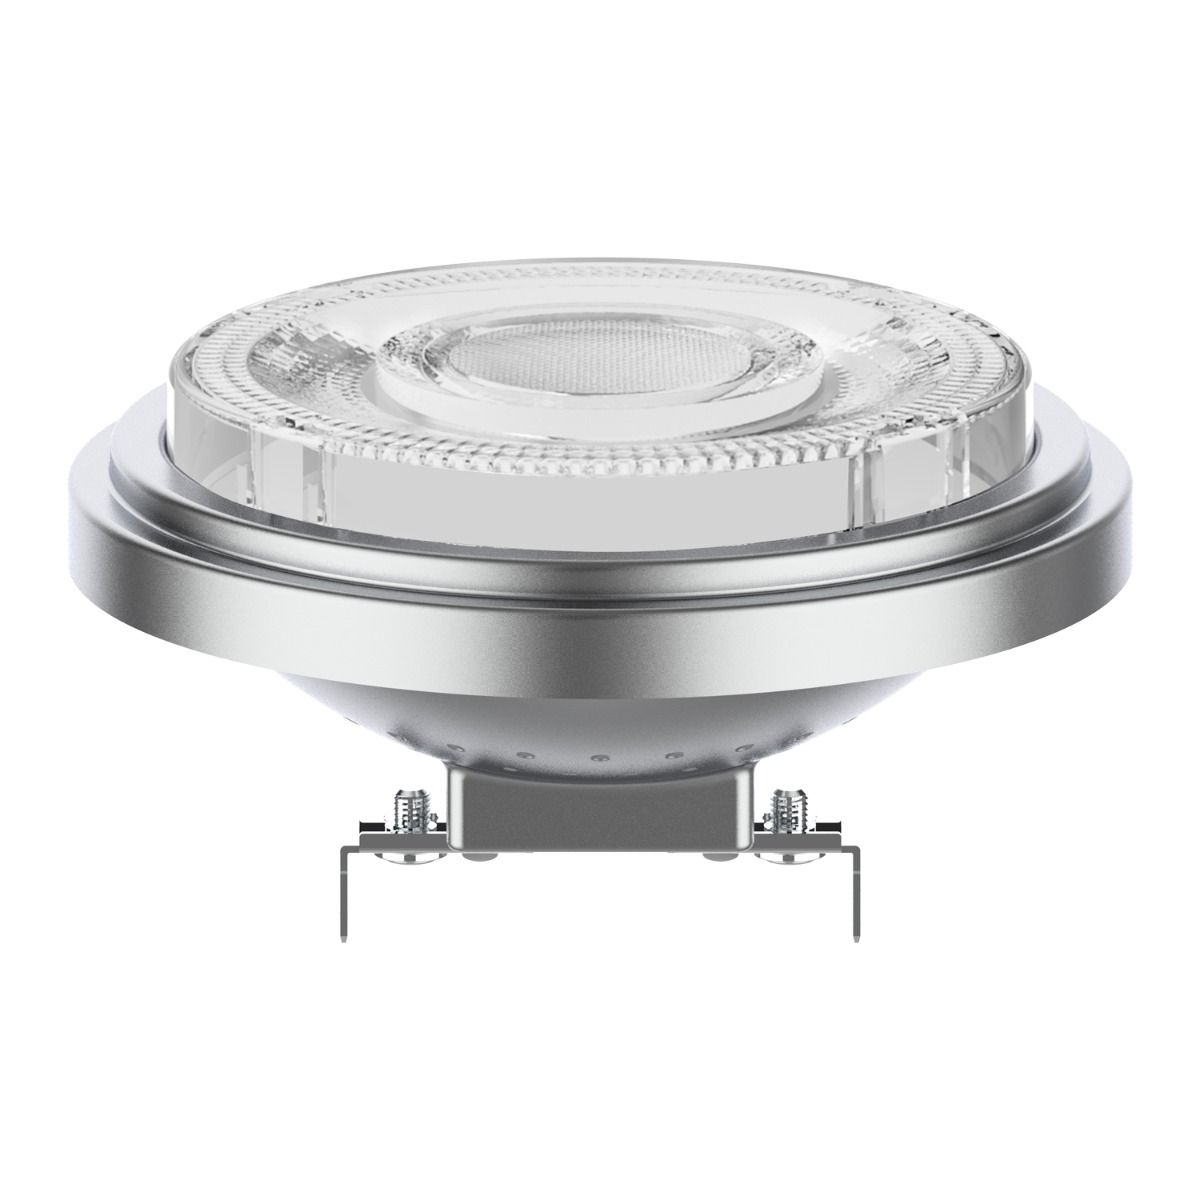 Noxion Lucent LED Spot AR111 G53 12V 7.3W 930 24D | Dimmable - Highest Colour Rendering - Replacer for 50W